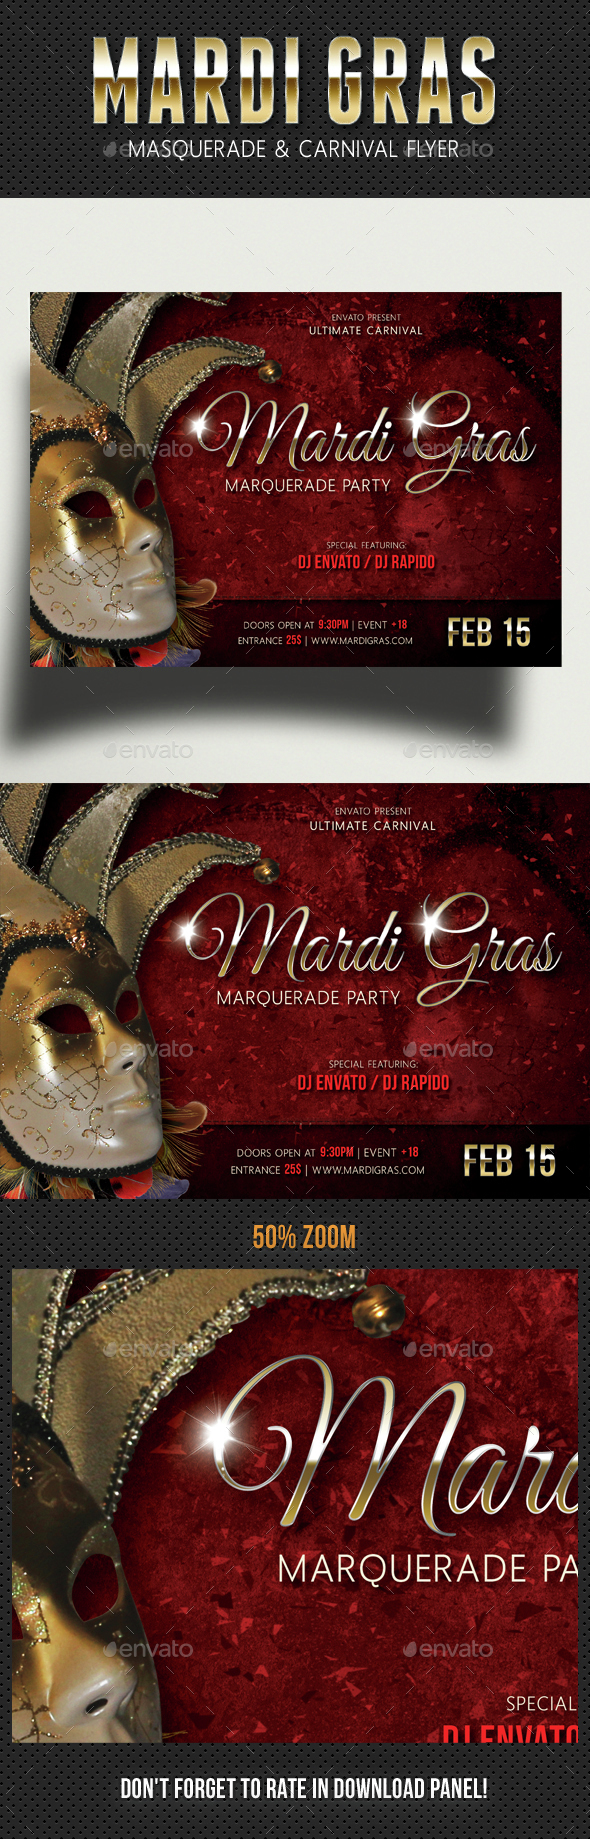 Mardi Gras Carnival Party Event Flyer - Events Flyers